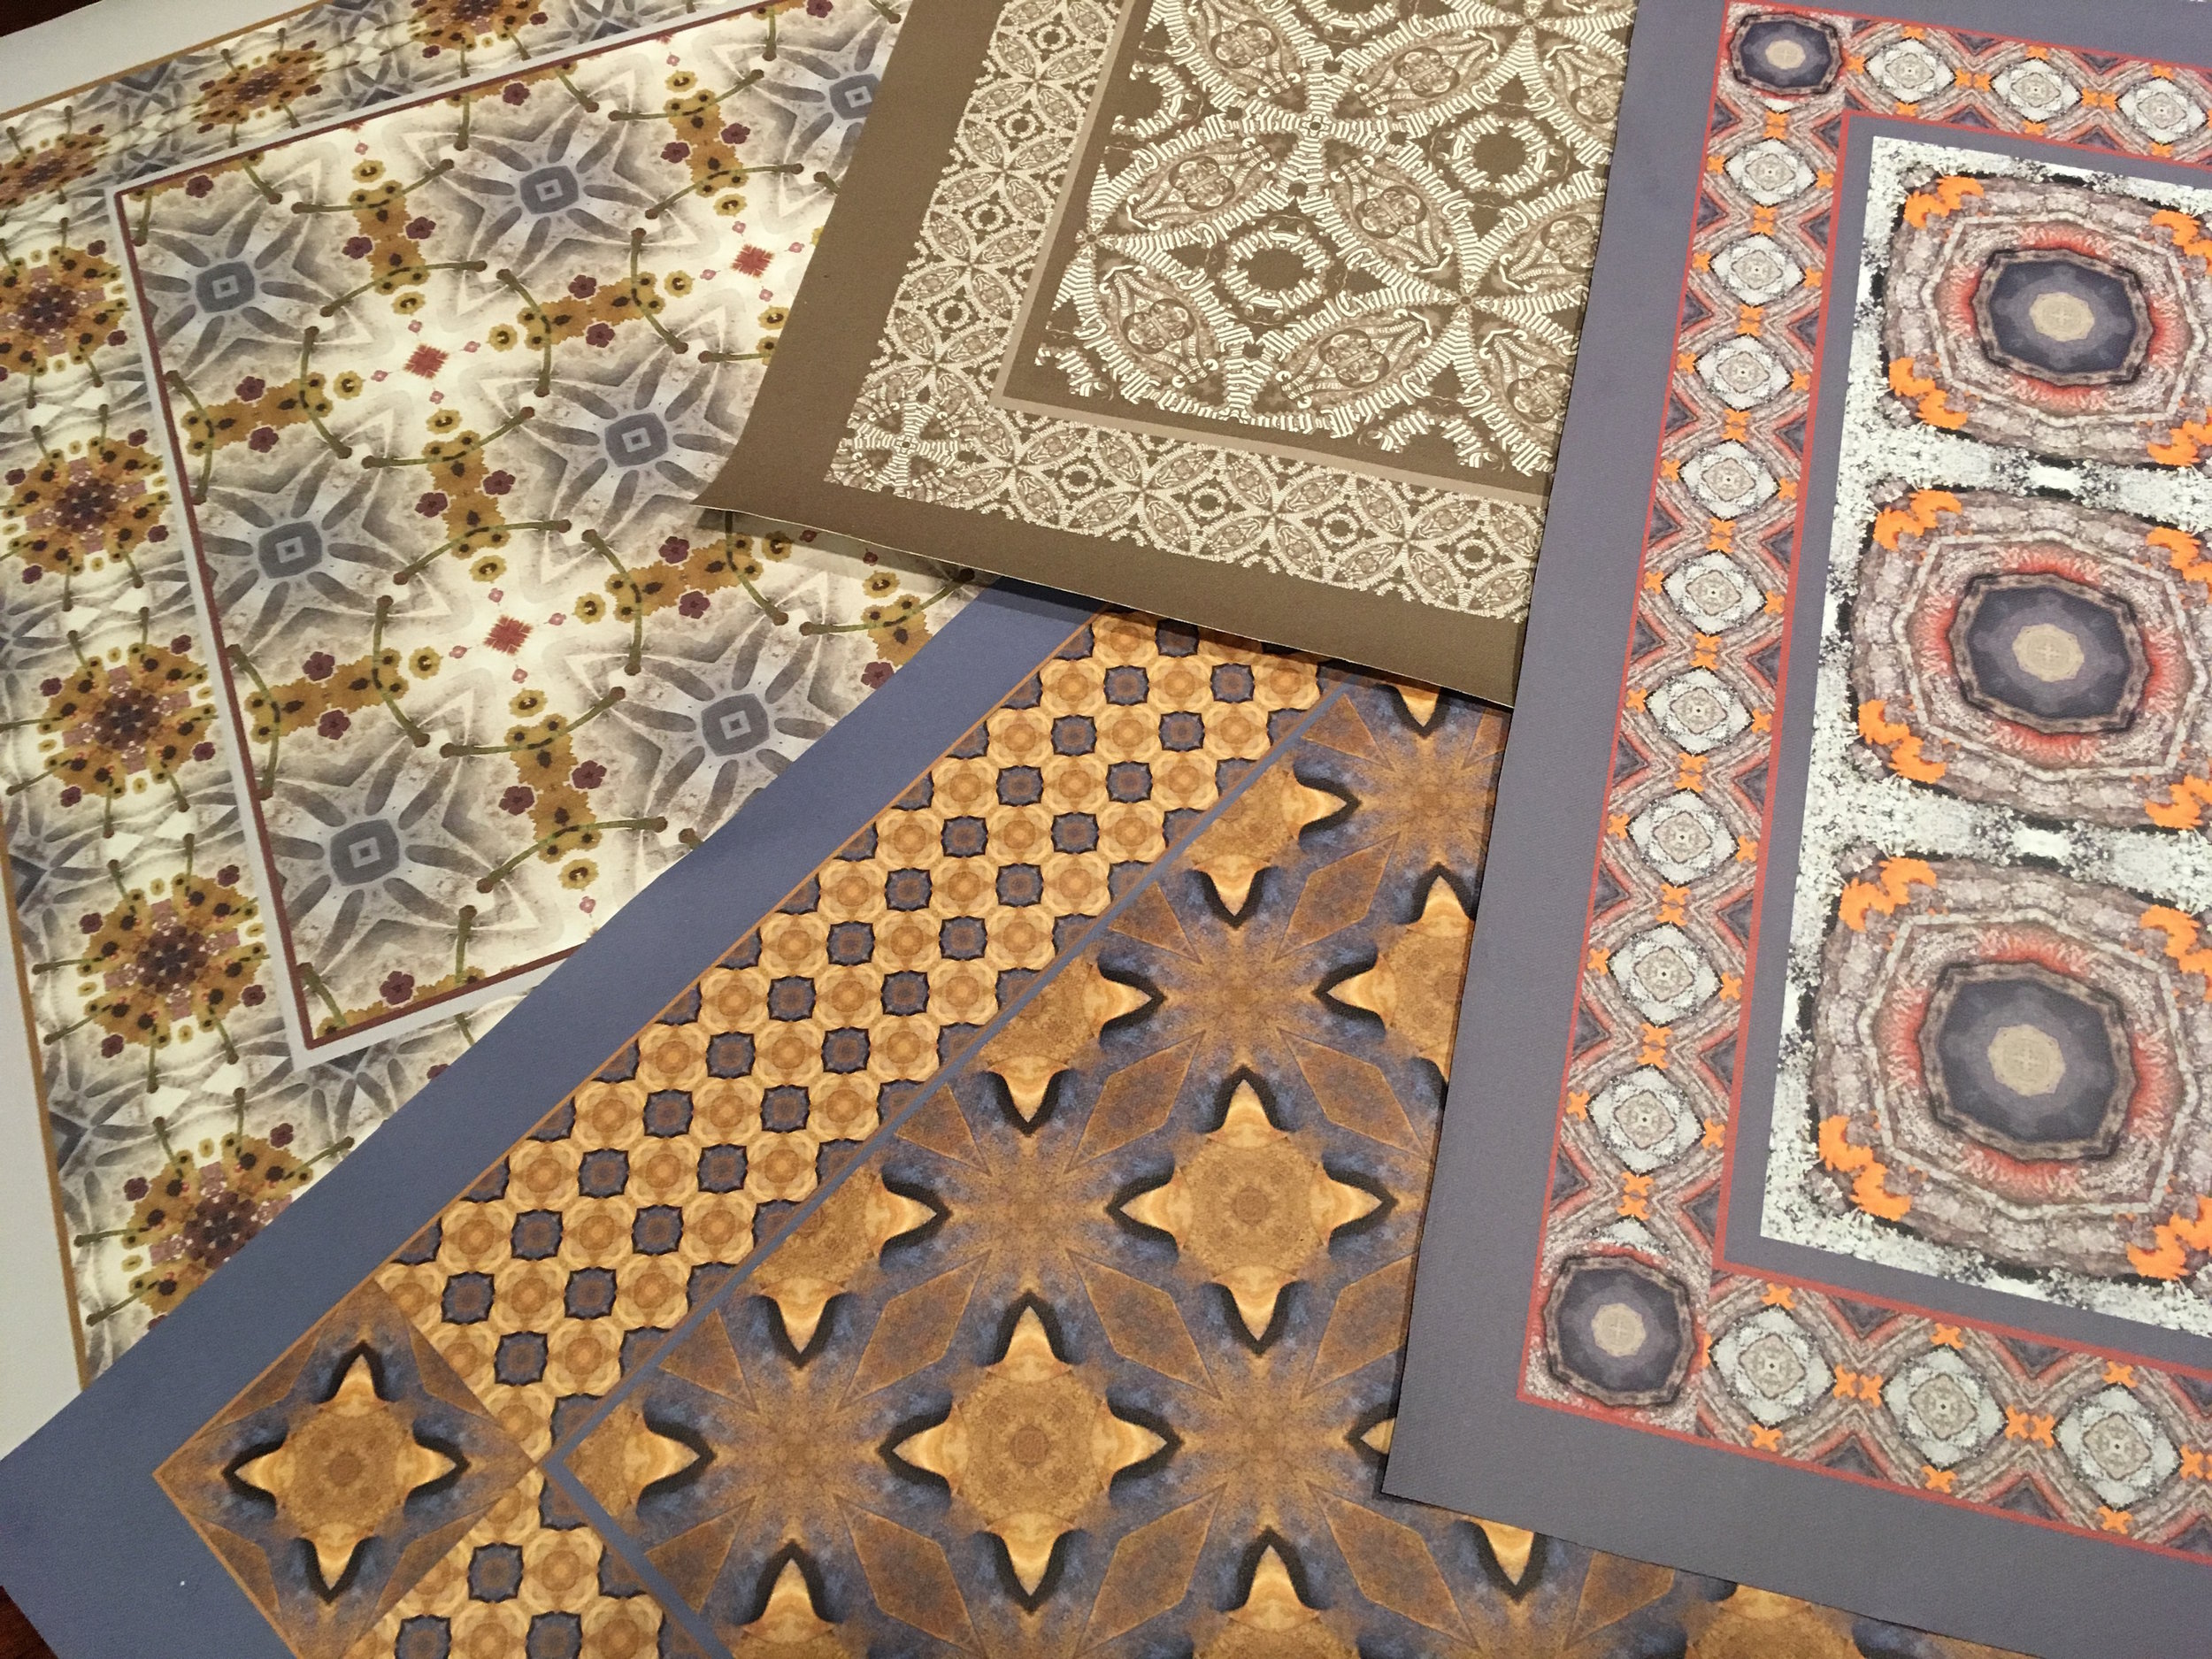 WinterPrint Custom-Made Floor Cloths   Printed on heavy weight canvas with nonslip backing. A selection of sizes & designs available, or custom-made with any WinterPrint design.